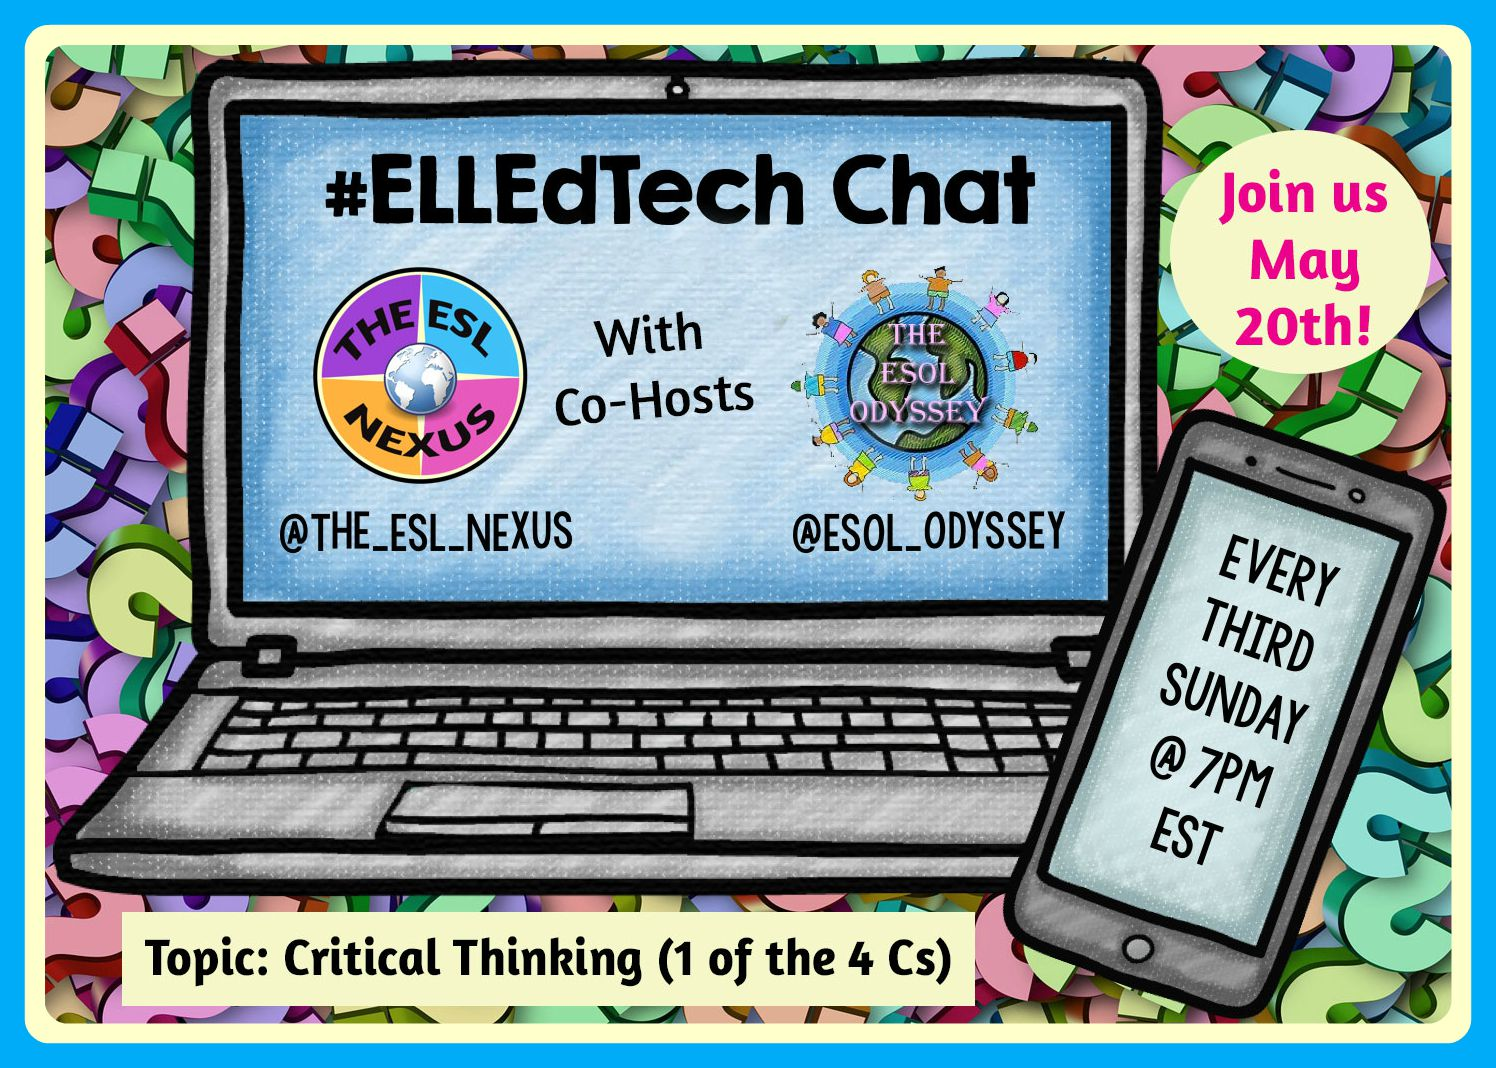 Come and discuss using tech tools to develop ELLs' critical thinking skills in the next #ELLEdTech Twitter chat on May 20, 2018 | The ESL Nexus